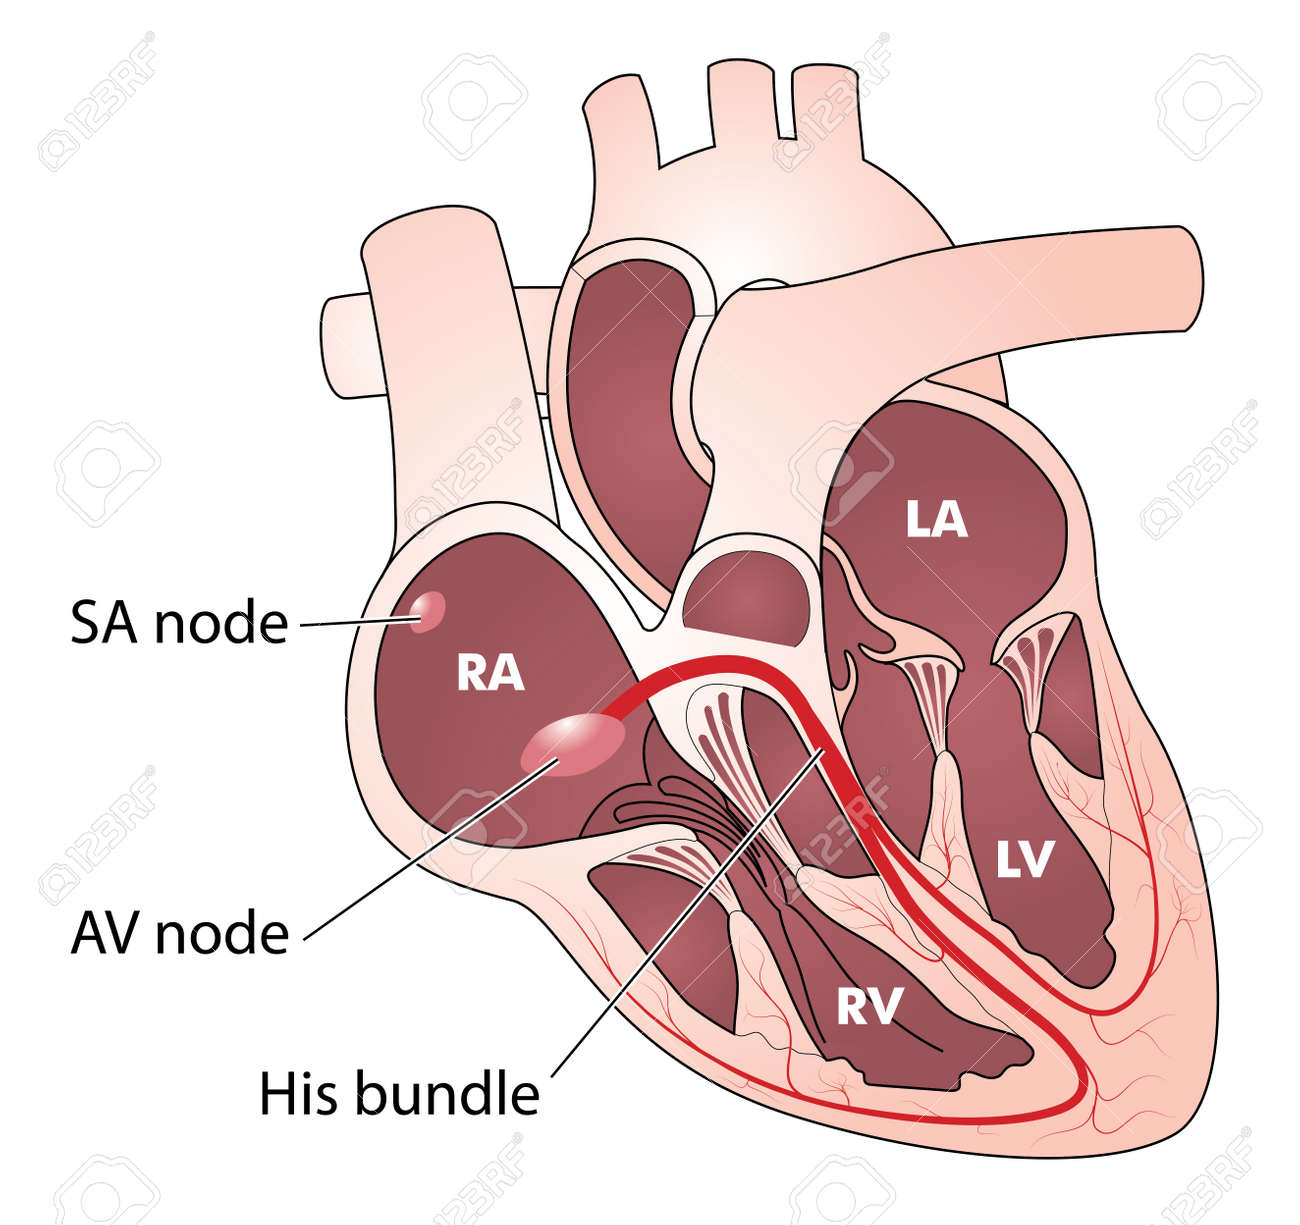 The Heart Showing The Electrical Conducting System Consisting ...